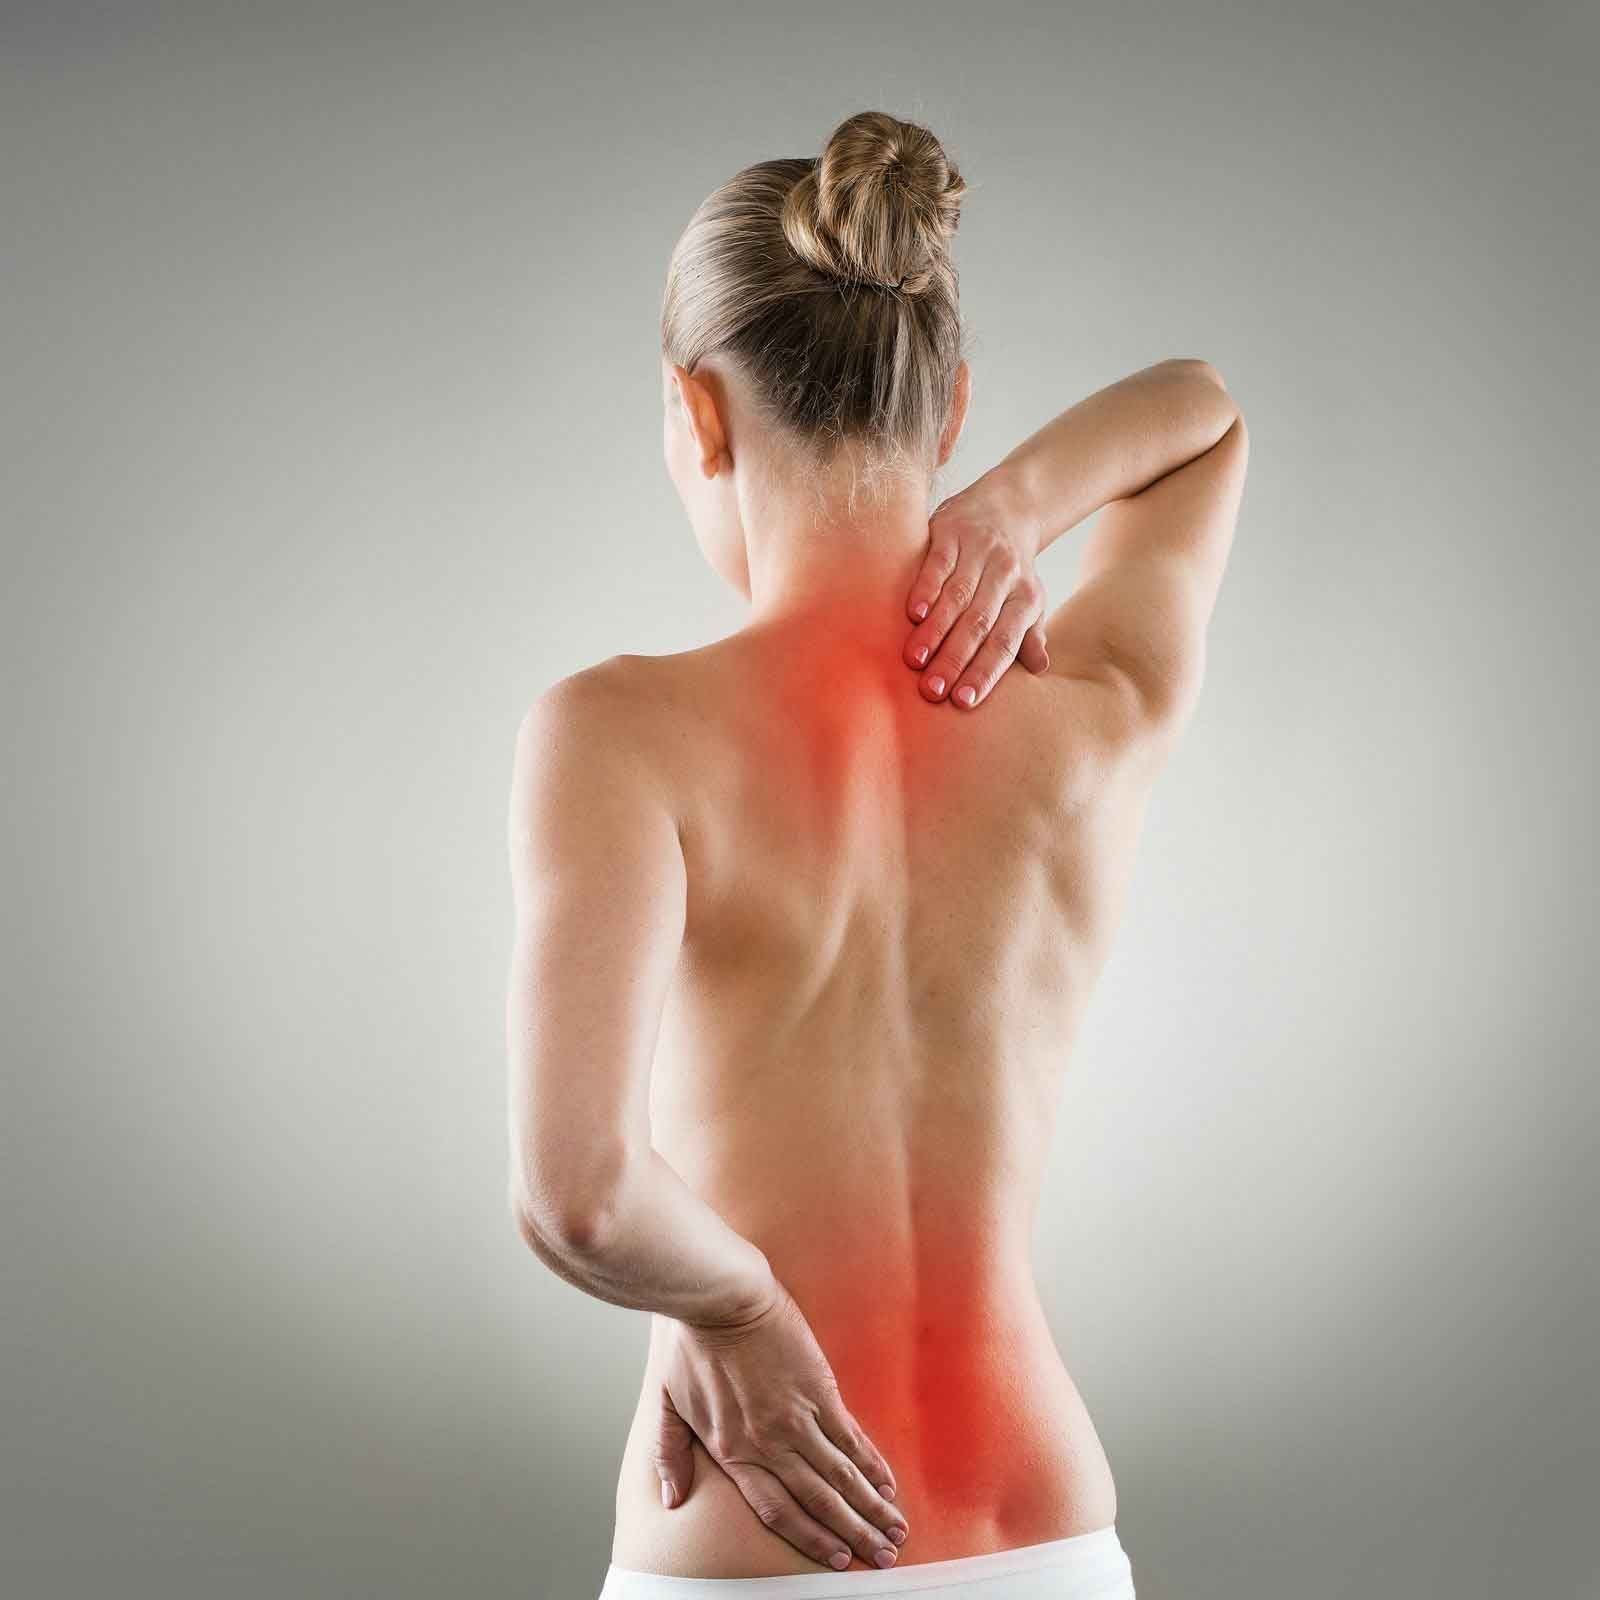 Suffering from back pain or other sore joints?